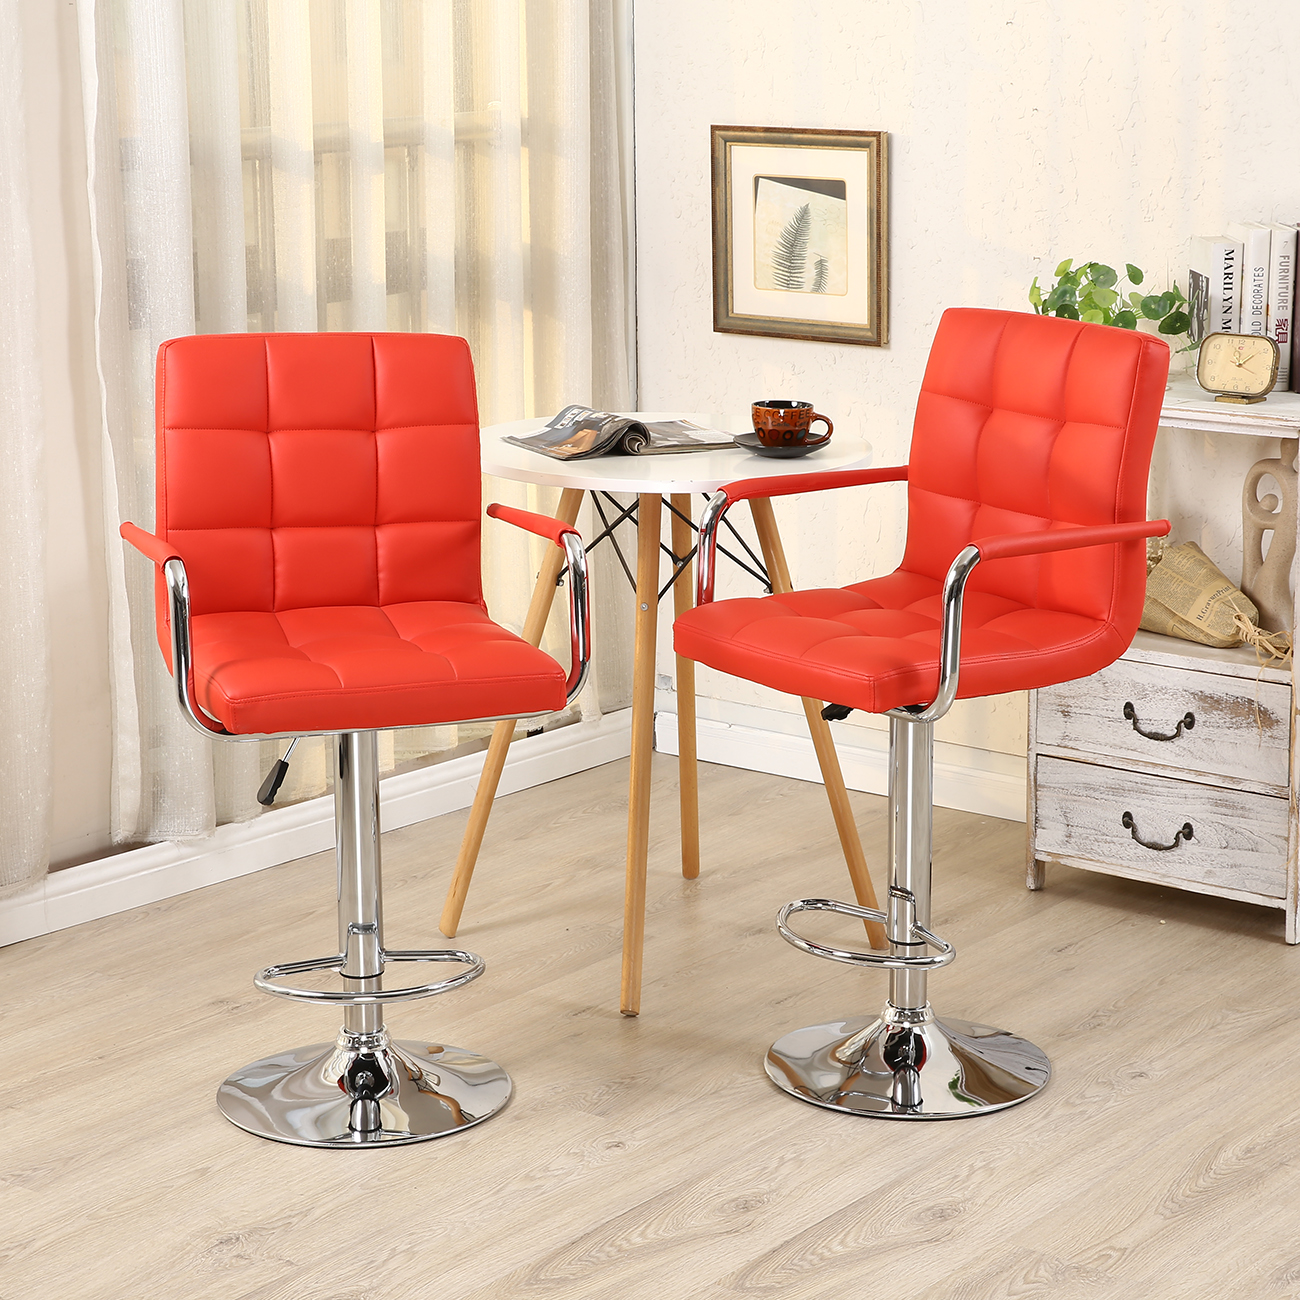 leather pub chair king and queen throne chairs for rent 2 bar stools modern hydraulic swivel pair